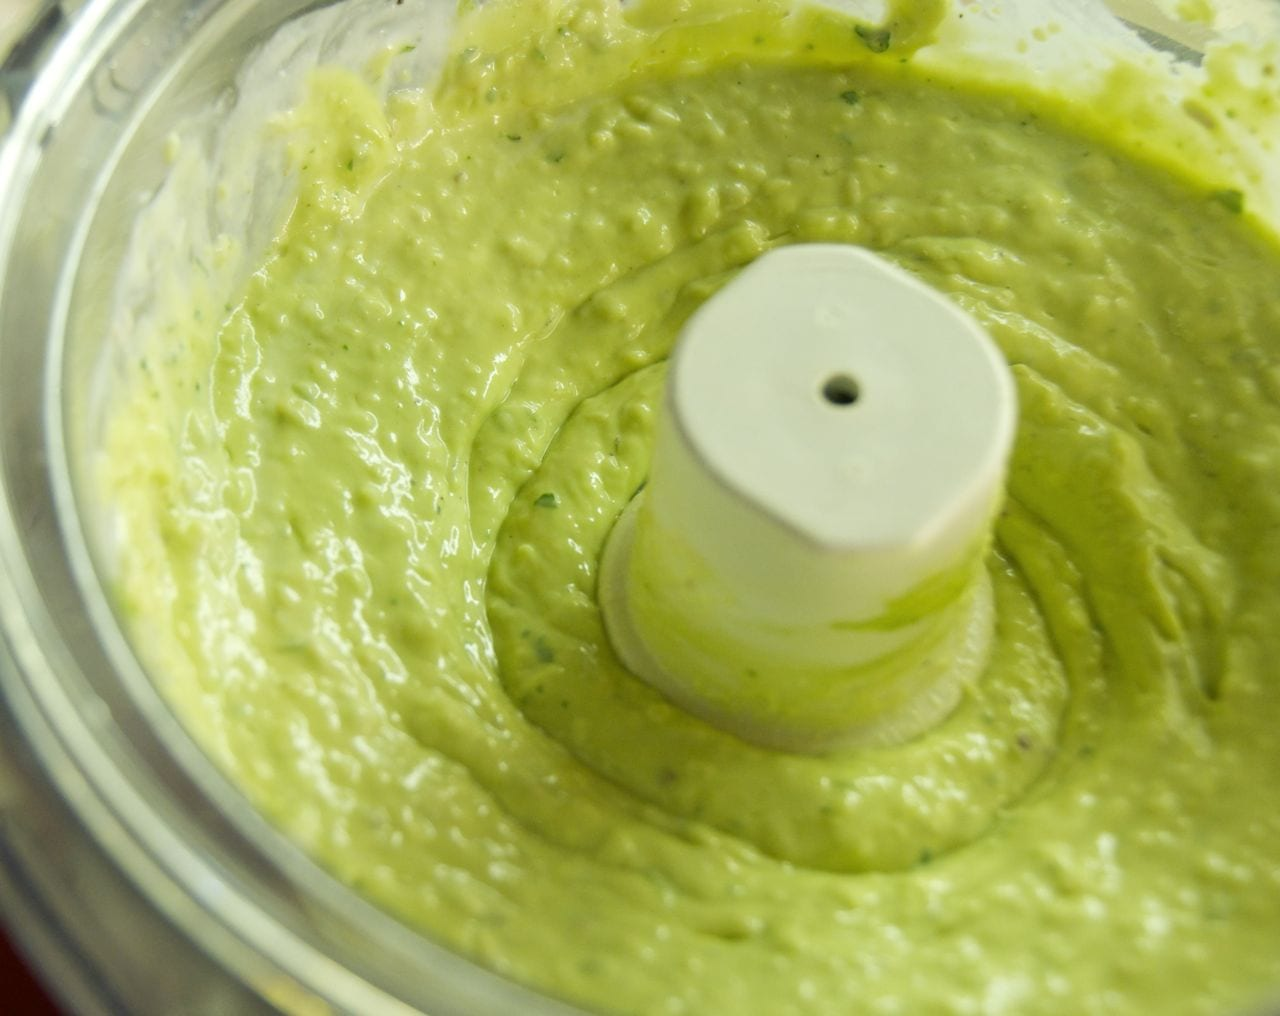 Avocado Garlic Aioli is a great sandwich spread or chip and french fries dip.